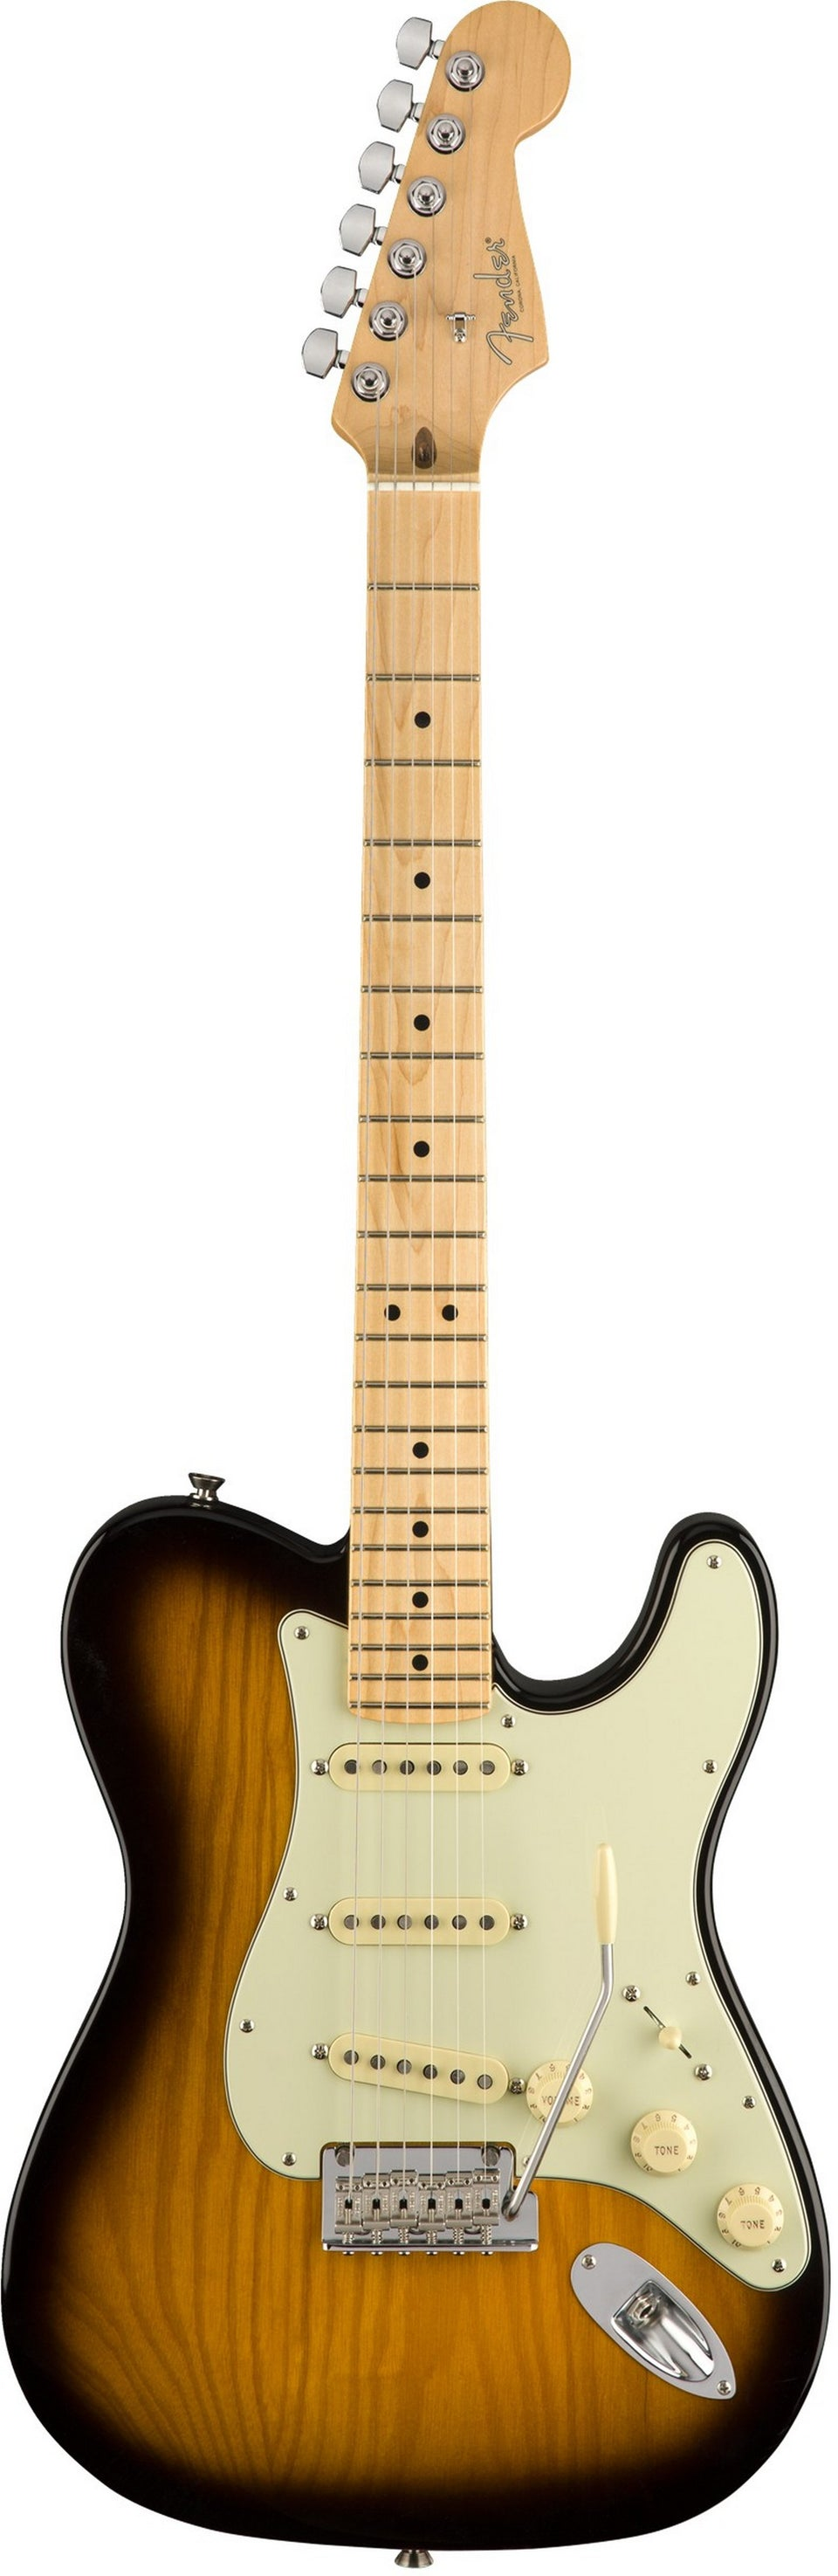 Fender 2018 Limited Edition Strat Tele Hybrid - 2 Color Sunburst